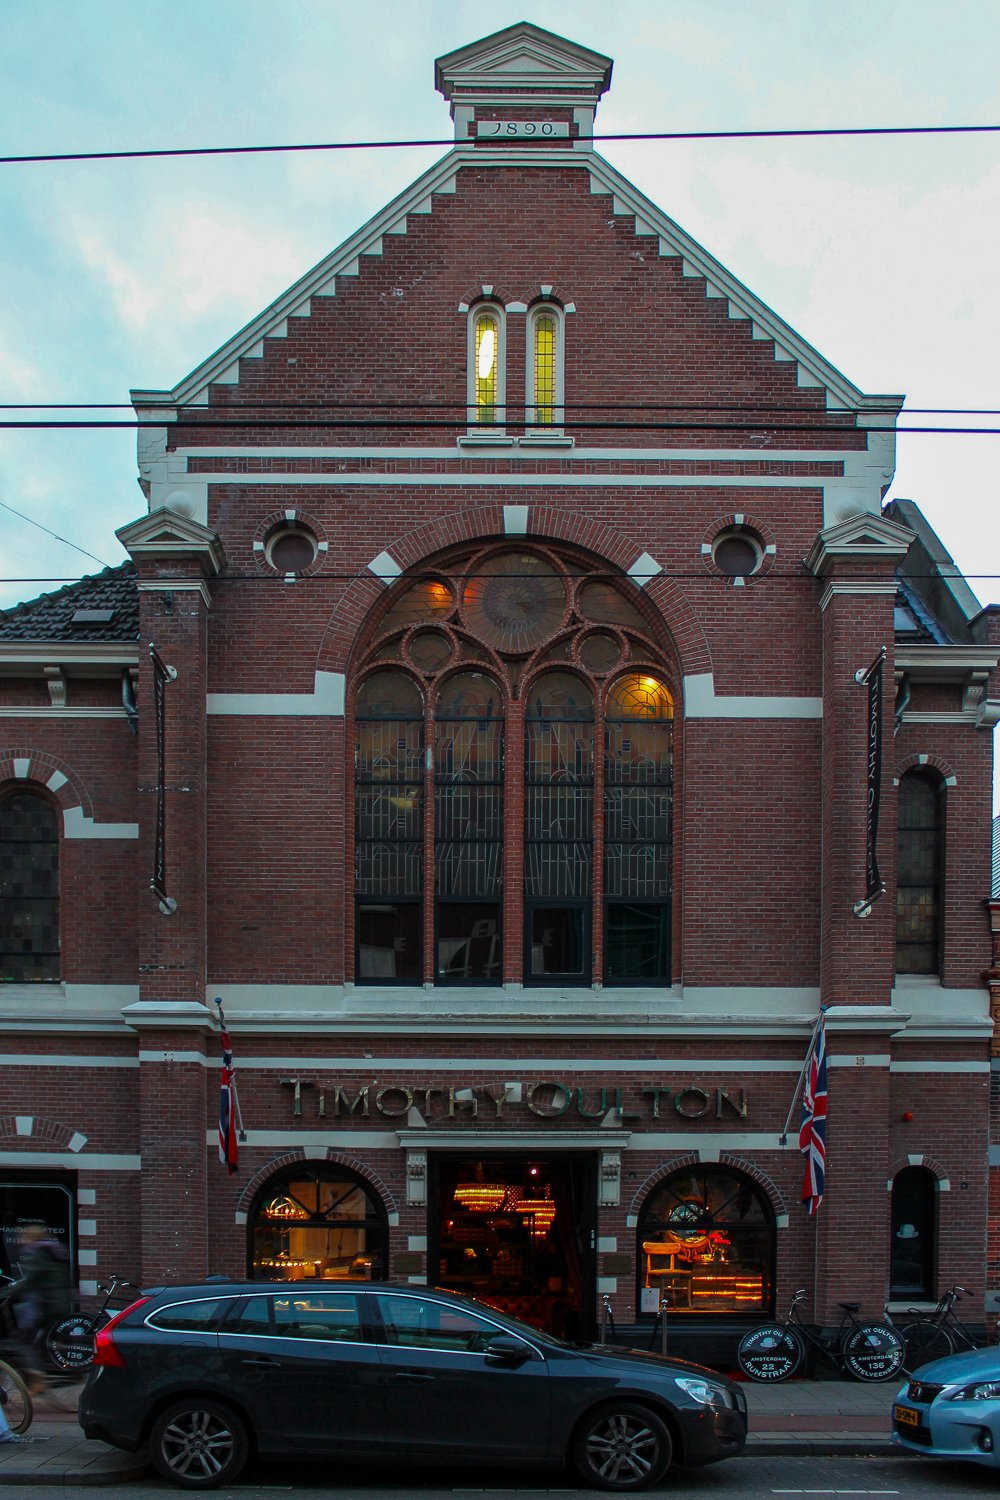 The Timothy Oulton flagship store on Amstelveenseweg in Amsterdam